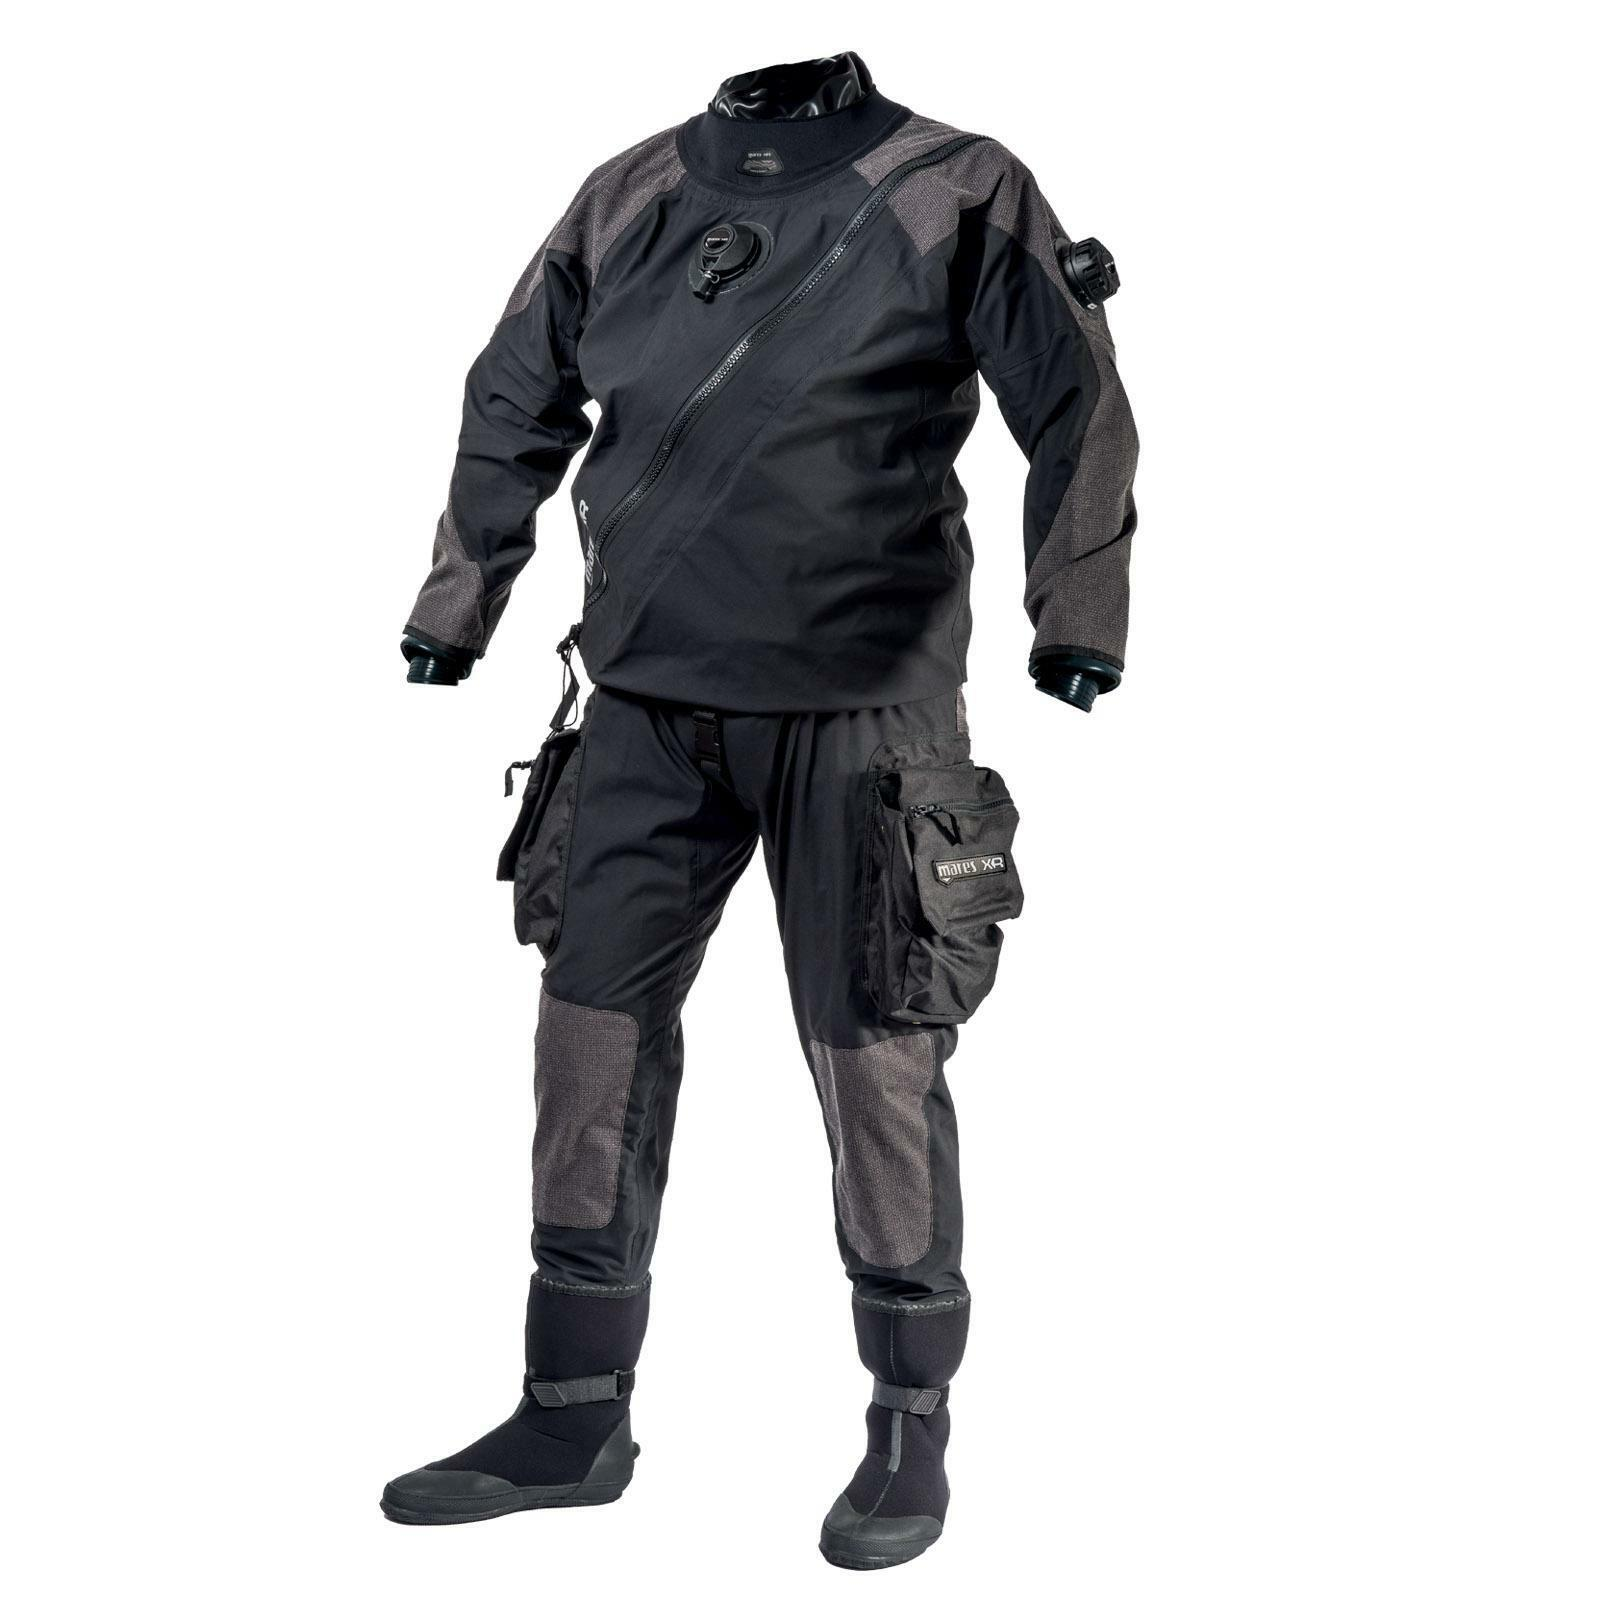 Mares XR Kevlar Diving Dry Suit with Latexmanschetten